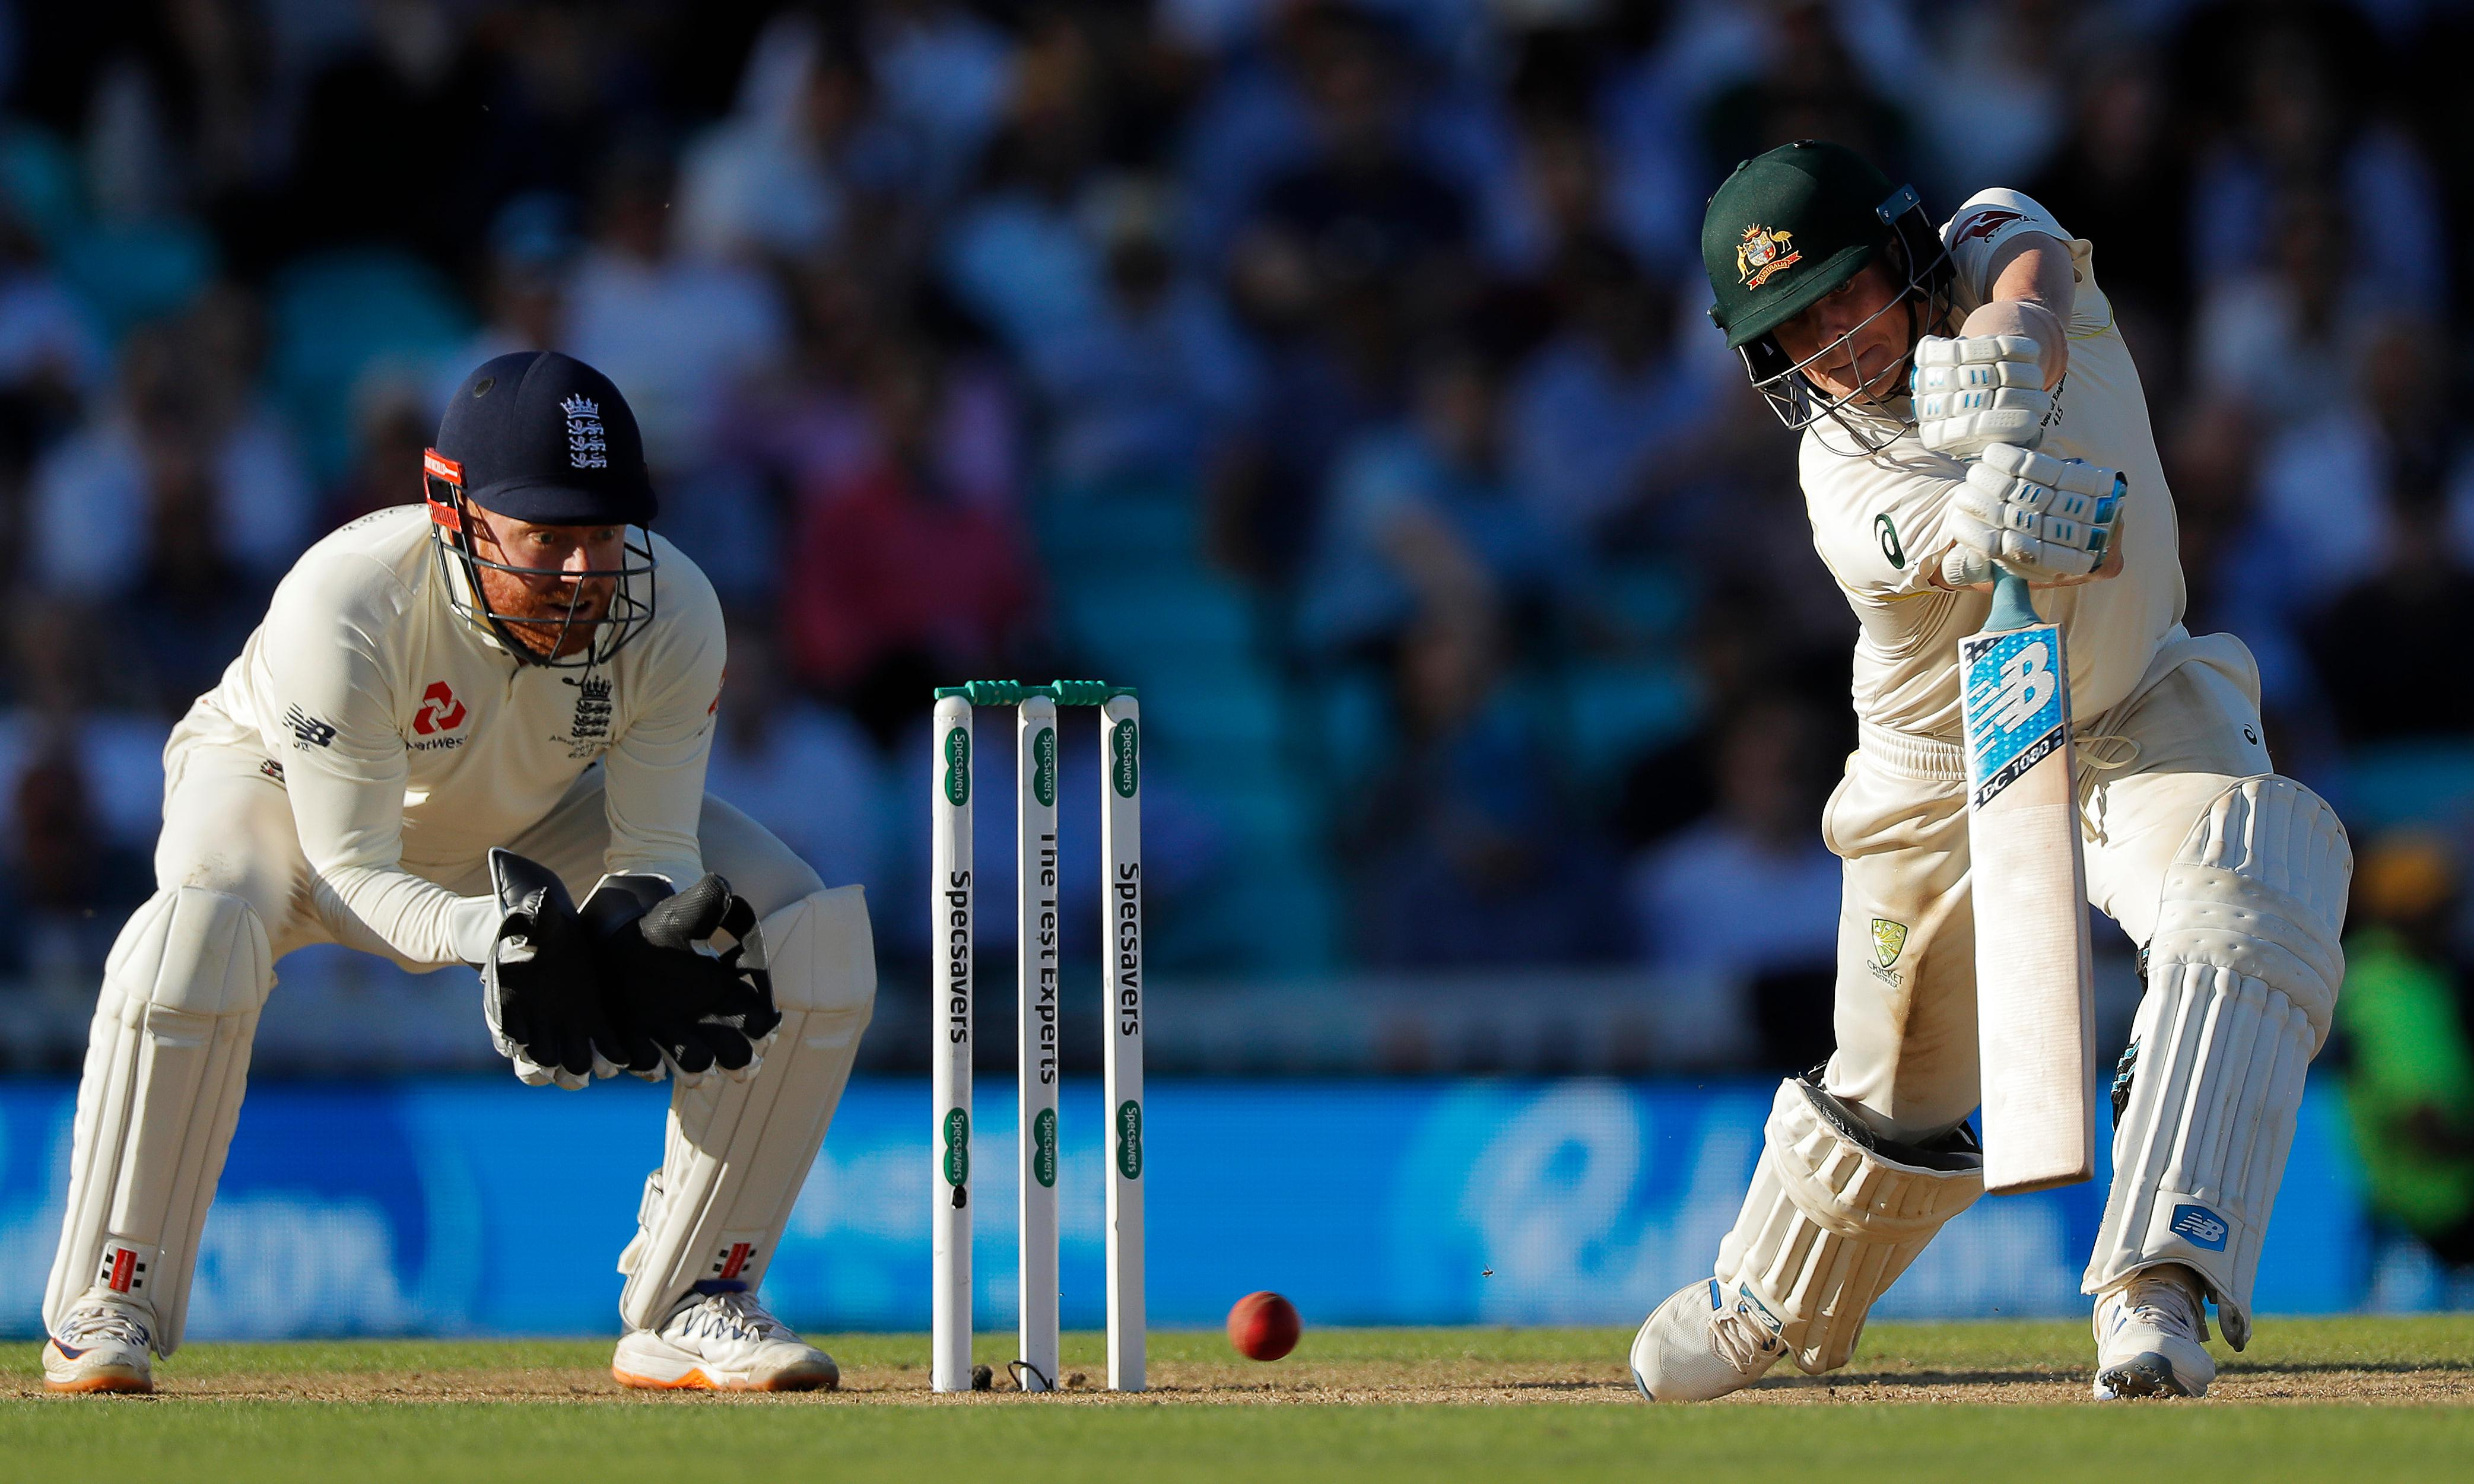 Steve Smith continues absurdly prolific run to change the mood again